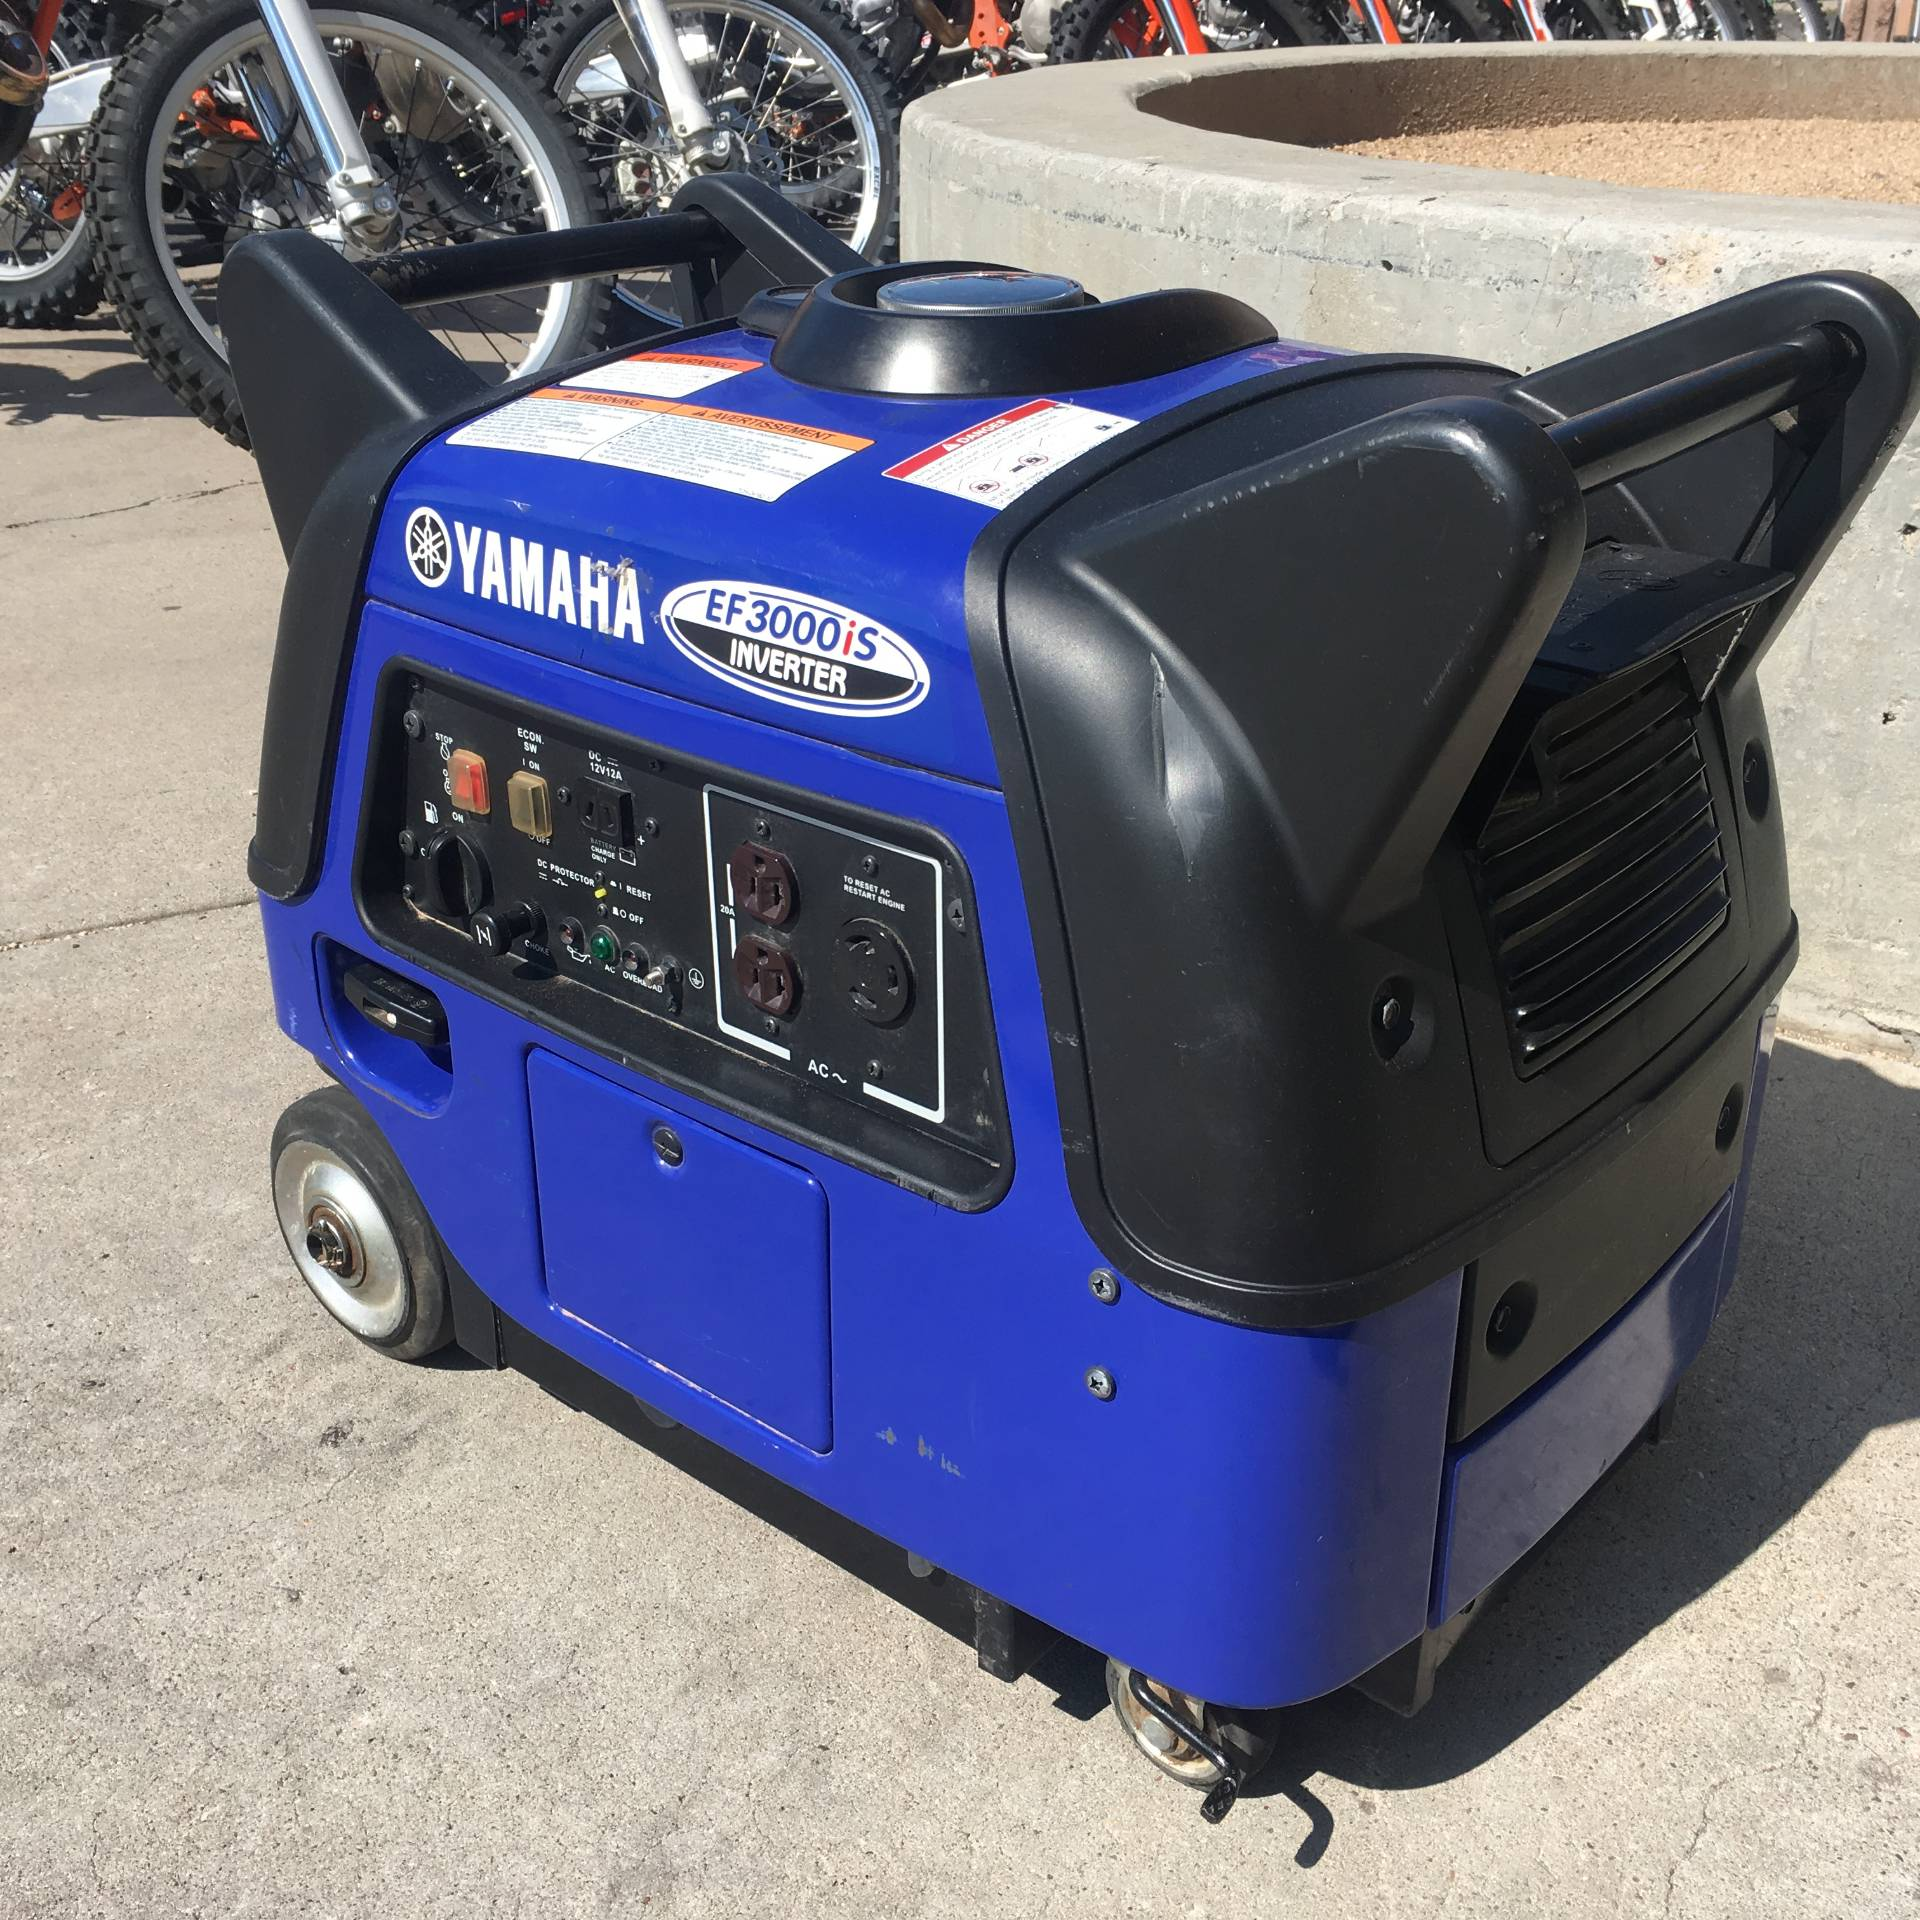 2014 Yamaha Inverter EF3000iS in Albuquerque, New Mexico